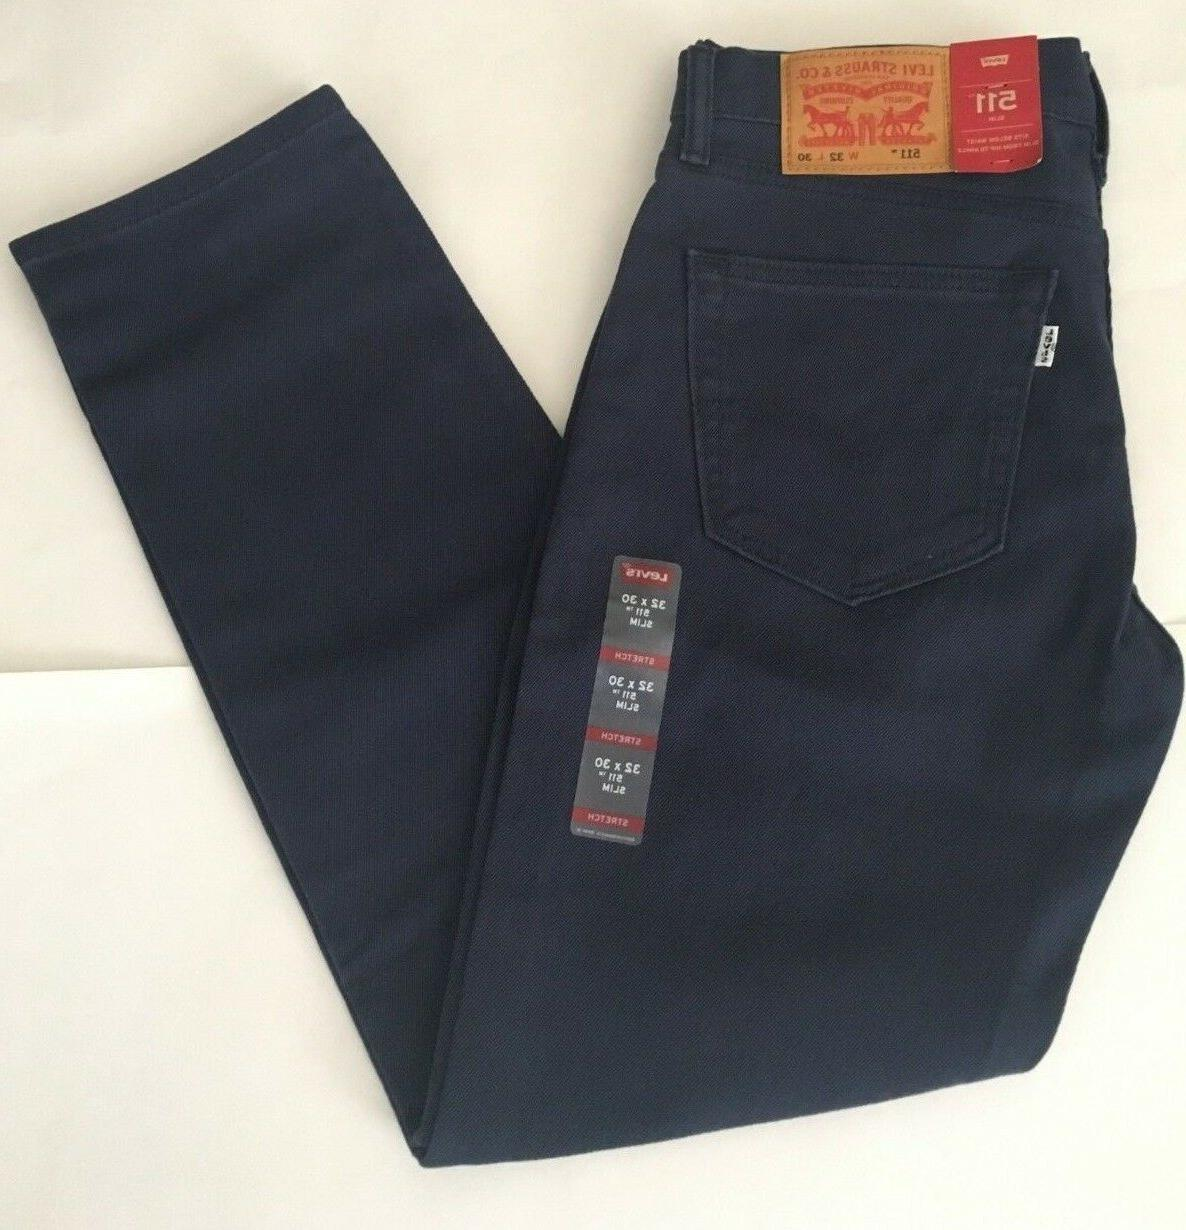 NEW Men's Levi's 511 Slim Fit Stretch Jeans, Dress Blues -